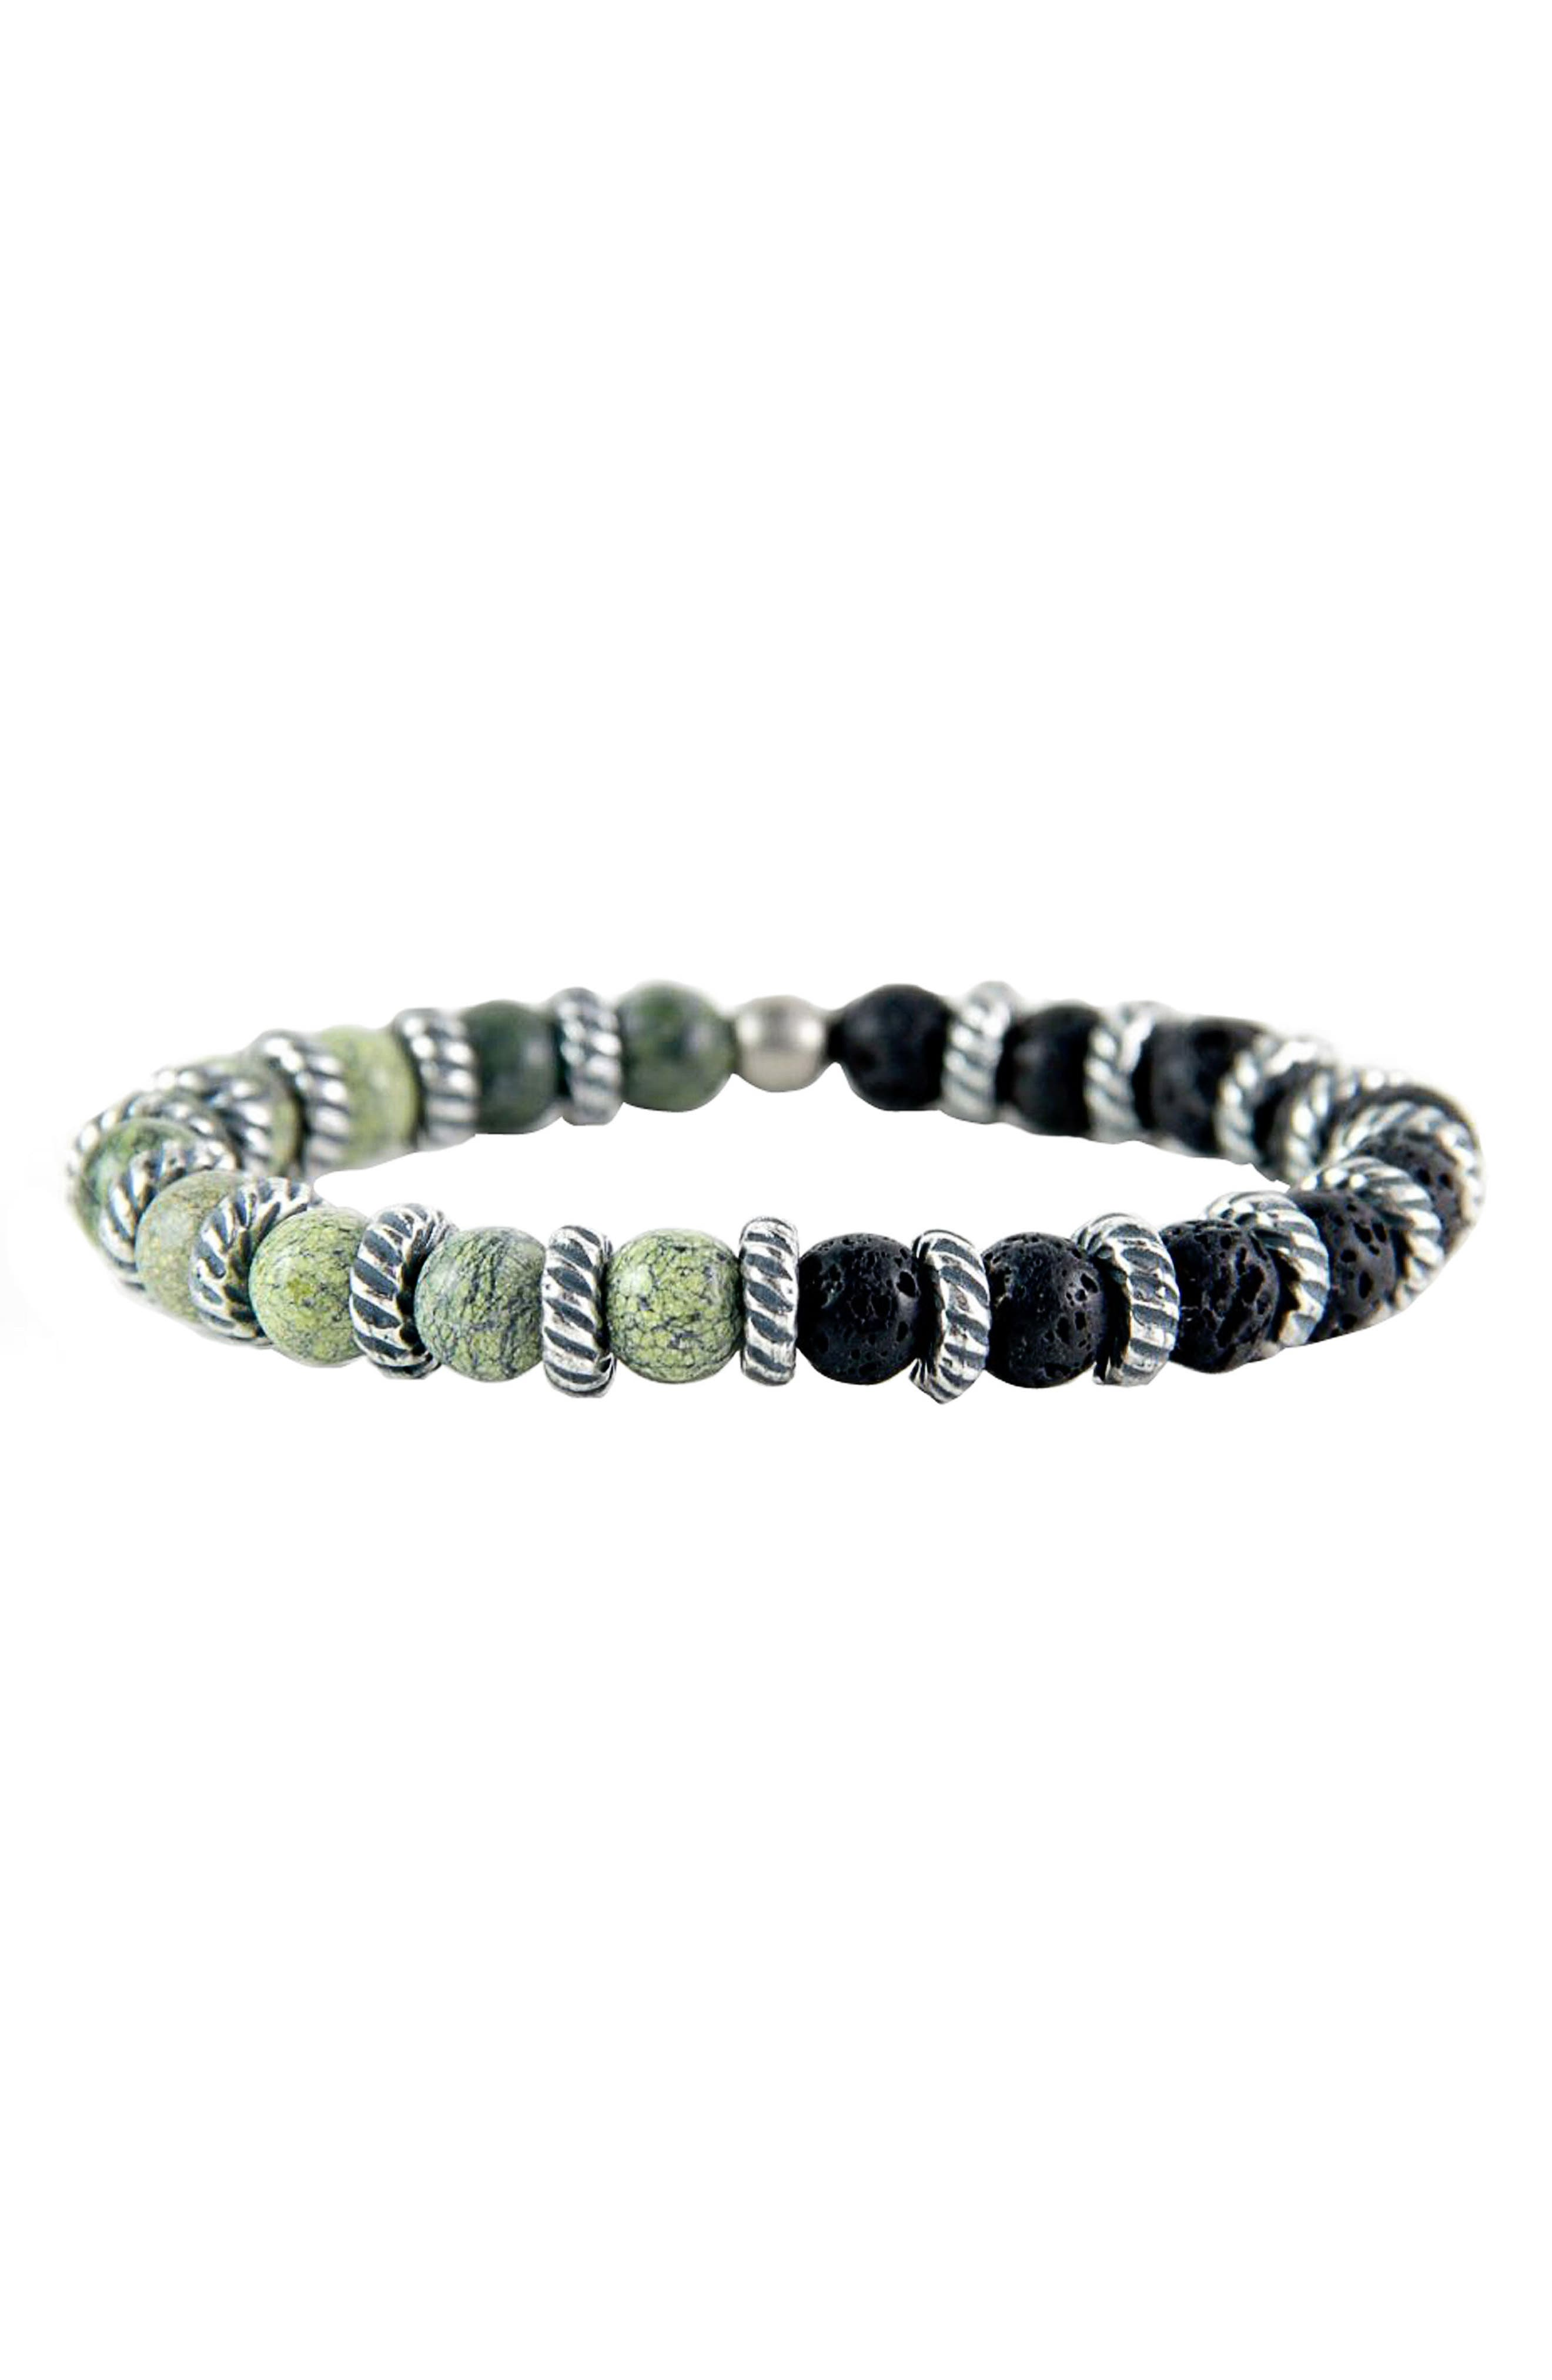 Serpentine Lava Stretch Bracelet,                         Main,                         color, 300